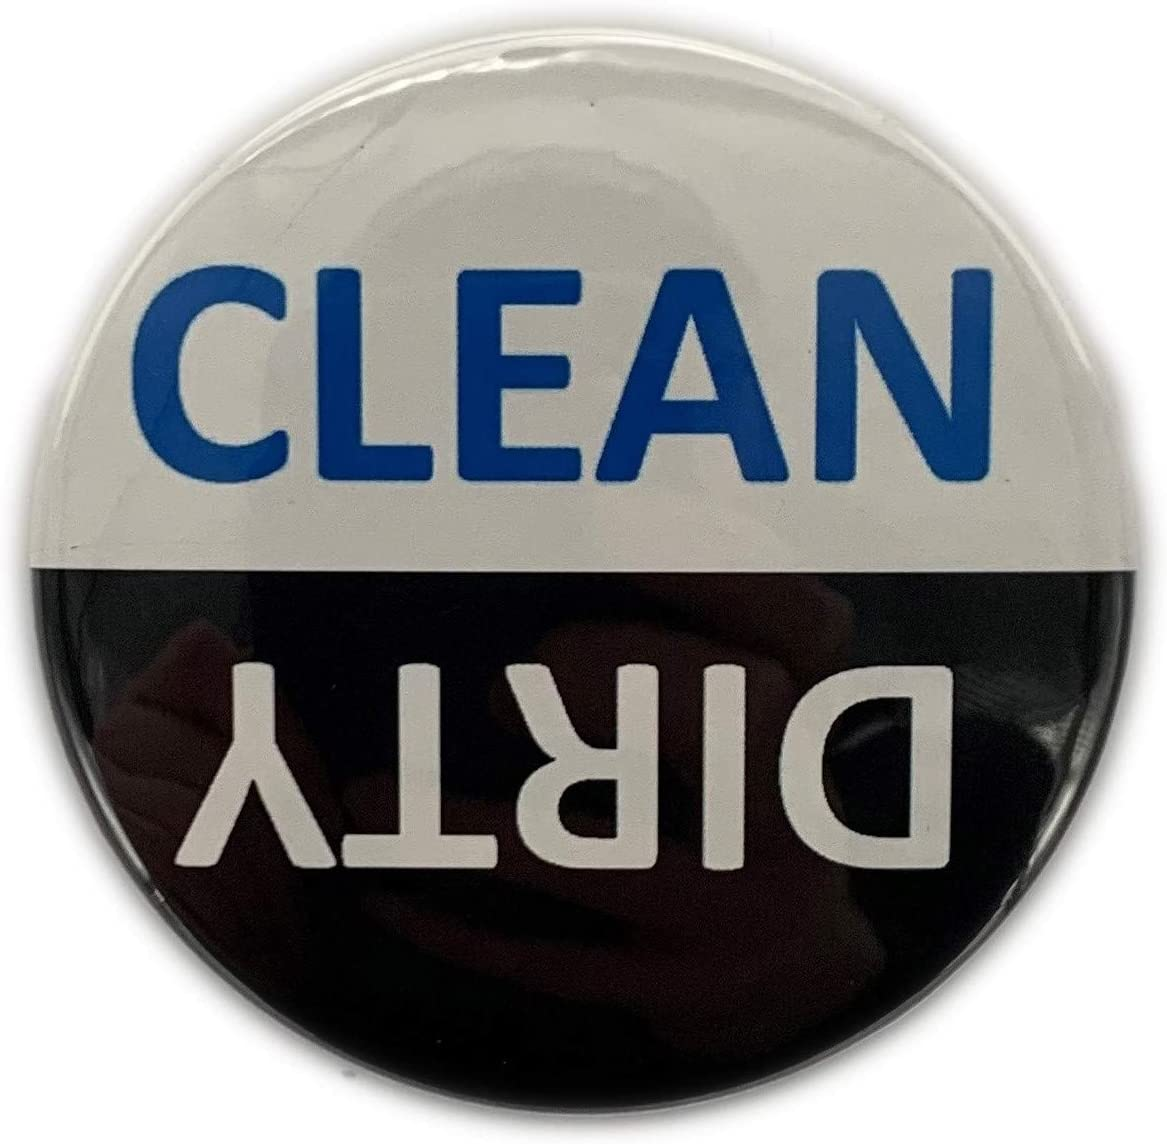 "Dishwasher Magnet Dirty or Clean (2 1/4"") Premium Made in USA Flip Magnet Dish Washer Chores Ends Common Problems Save Time Waterproof and Durable Non Scratch Two Easy to See"